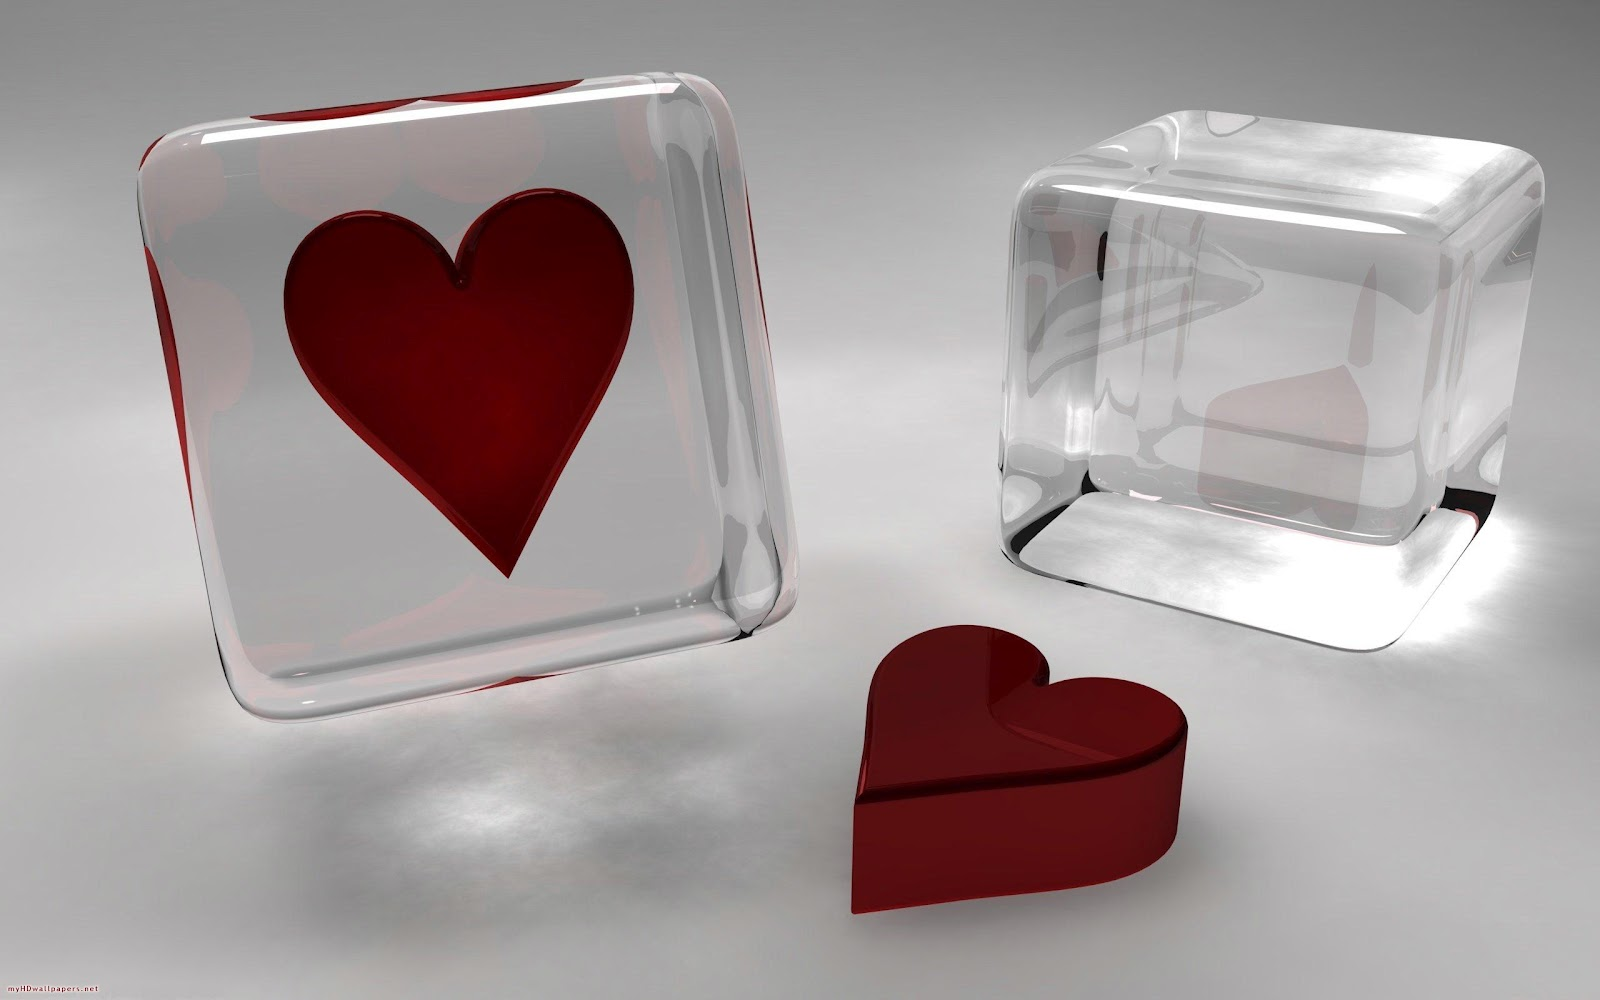 Ludo Quotes Wallpaper 3d Love Wallpapers 3d Love Wallpapers 2012 3d